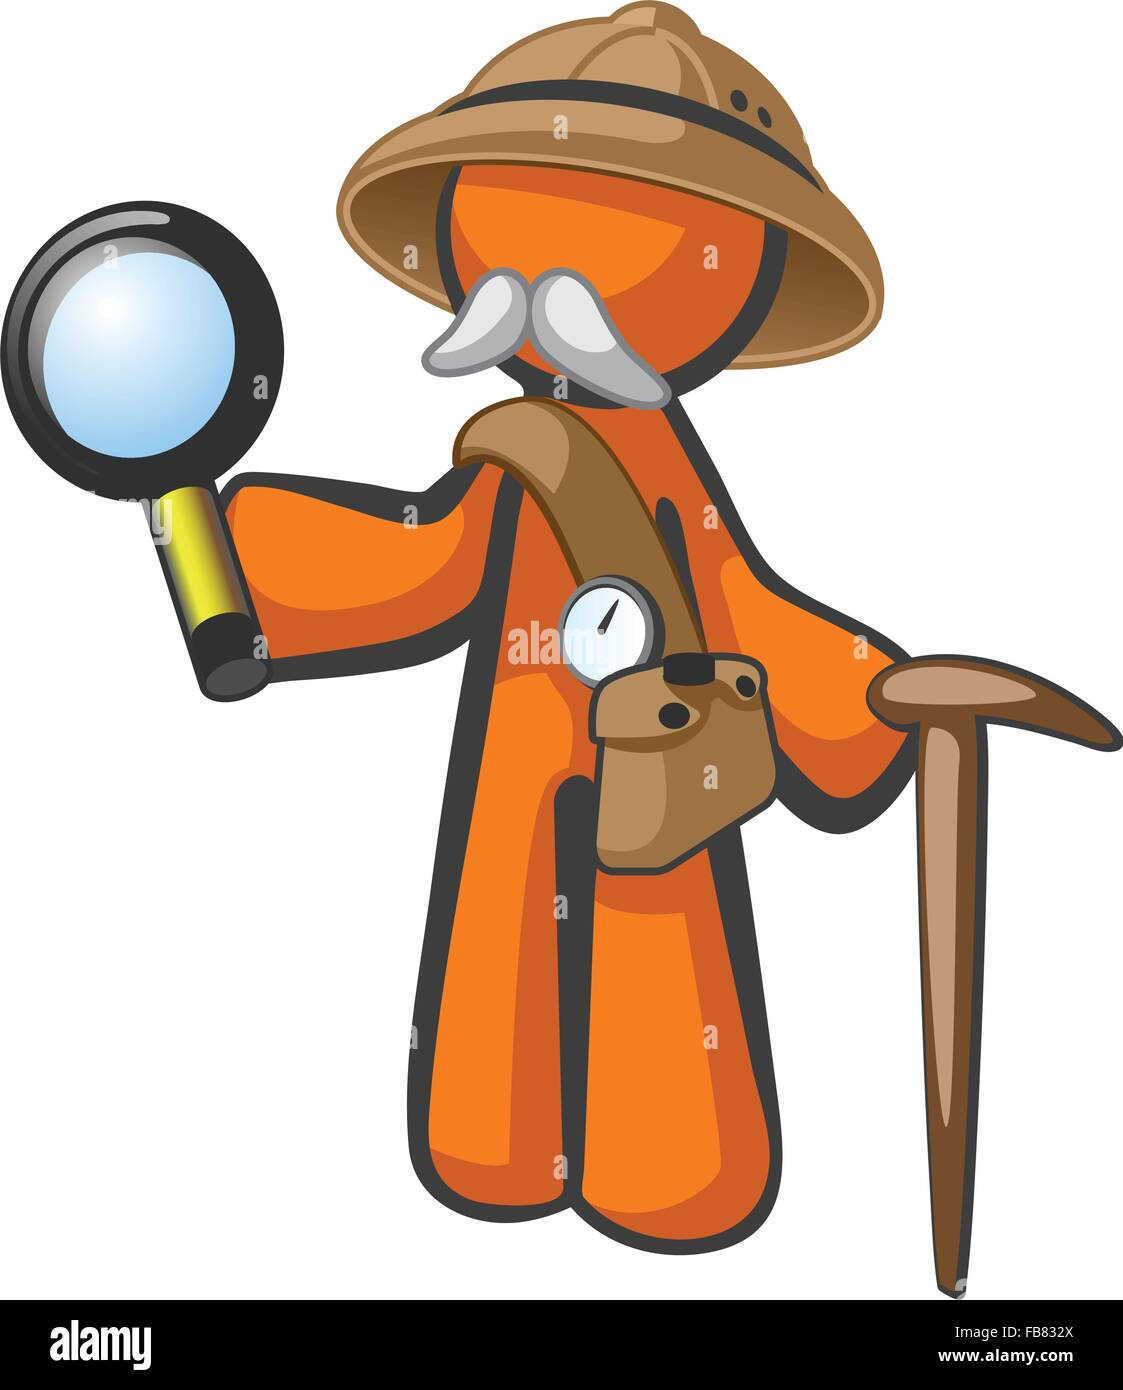 Doctor livingstone I presume? This orange man looks like the historical figure Dr Livingstone, but can also be a - Stock Vector